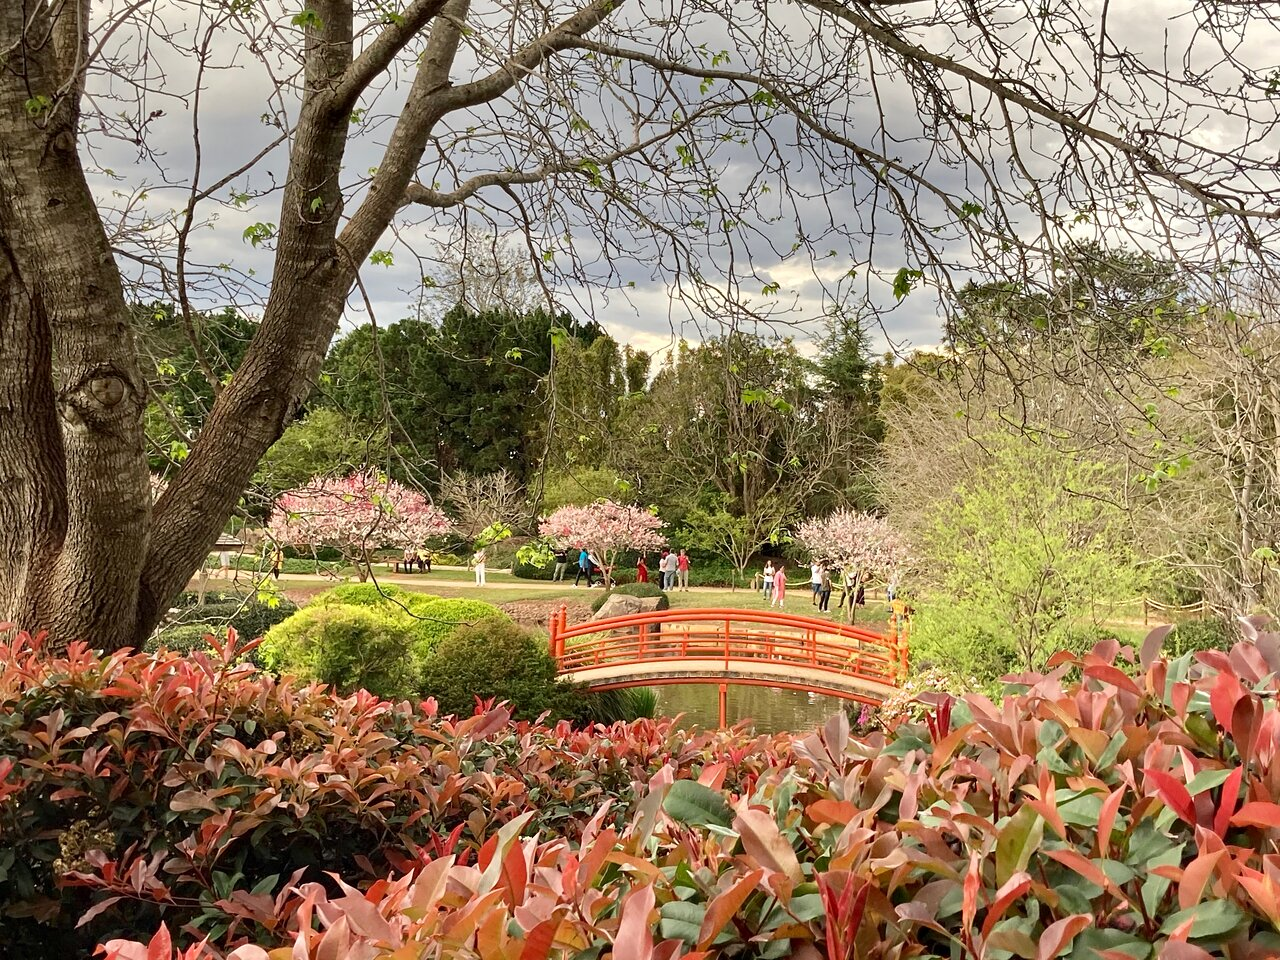 Japanese Garden Toowoomba Updated 2020 All You Need To Know Before You Go With Photos